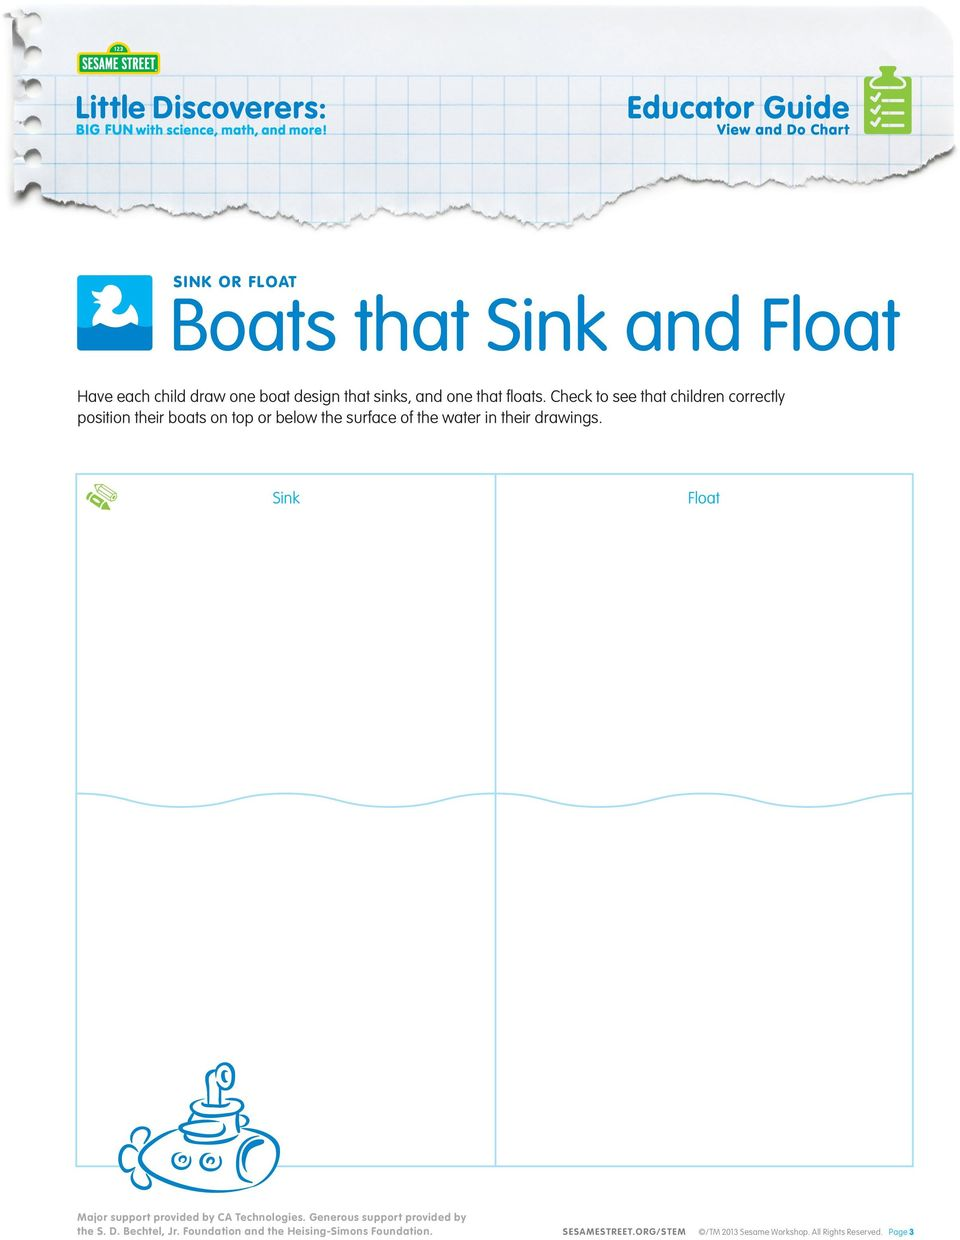 Check to see that children correctly position their boats on top or below